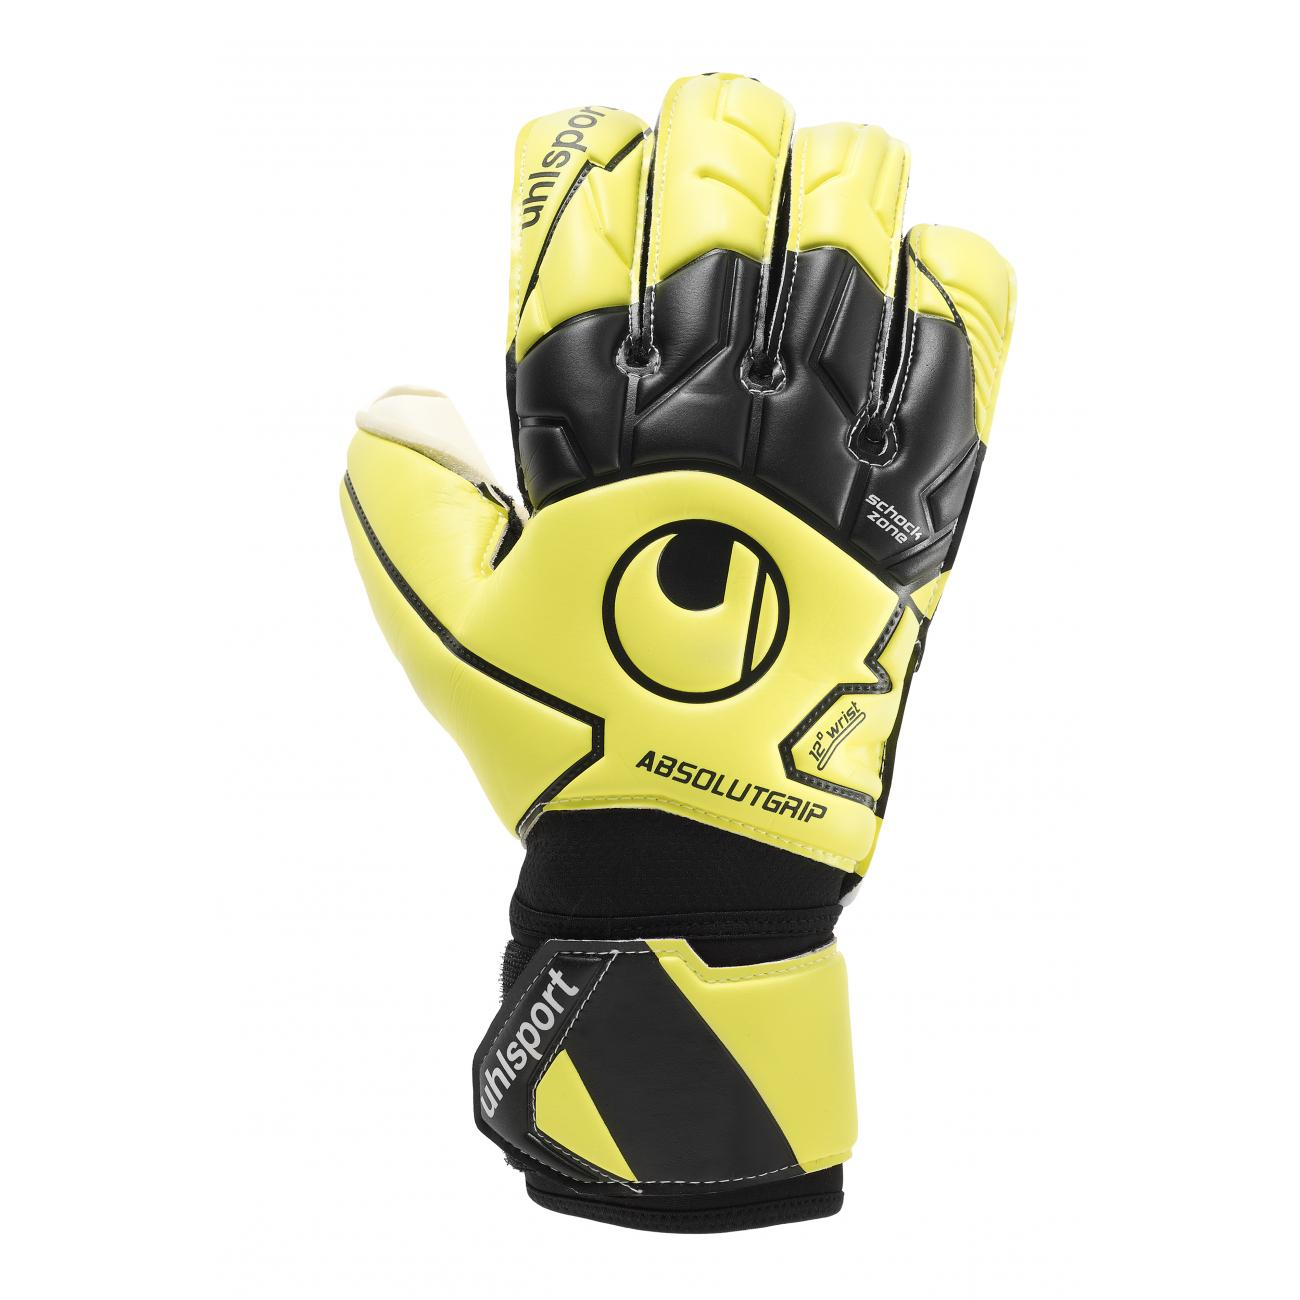 Uhlsport Absolutgrip Flex Frame Carbon